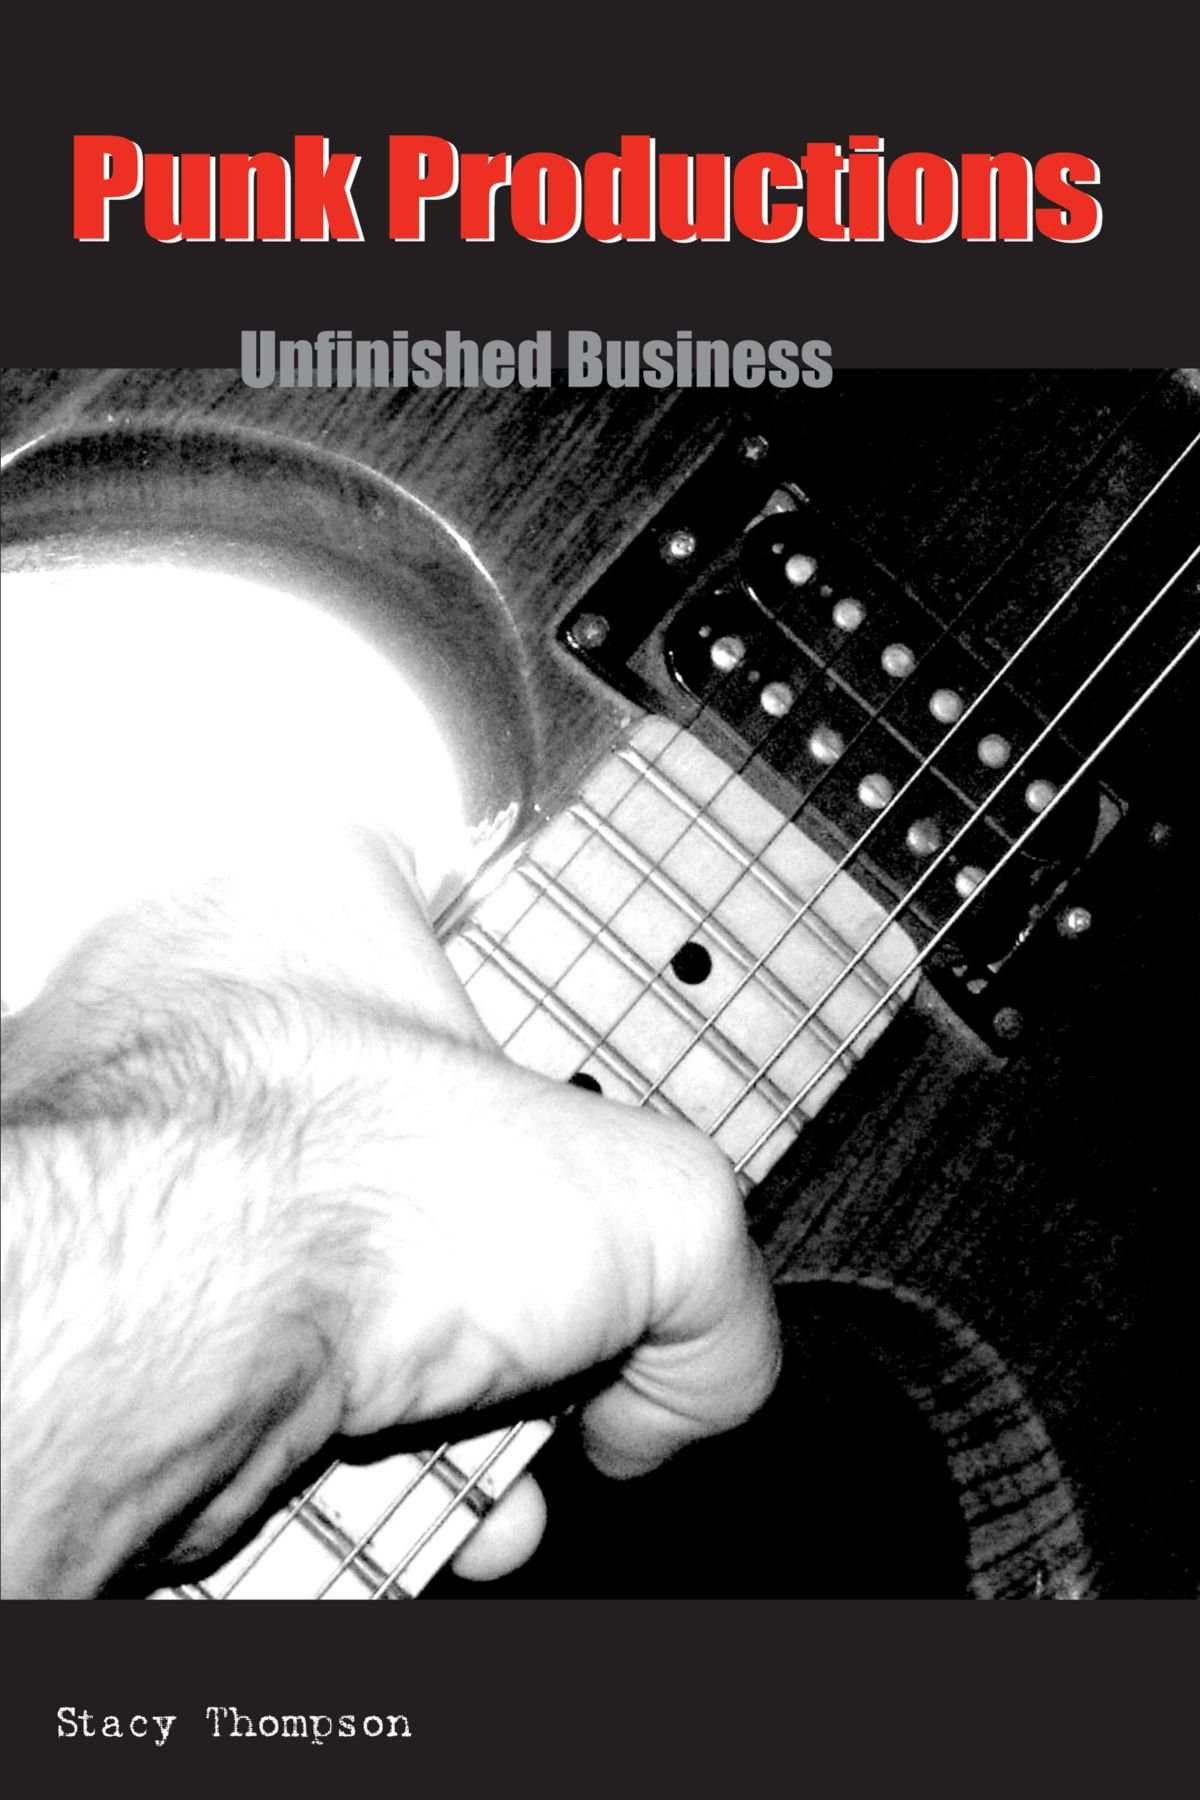 Punk Productions: Unfinished Business (Suny Series, Interruptions: Border Testimony (Ies) and Critical Discourse/S) (Suny Series, Interruptions: Border ...